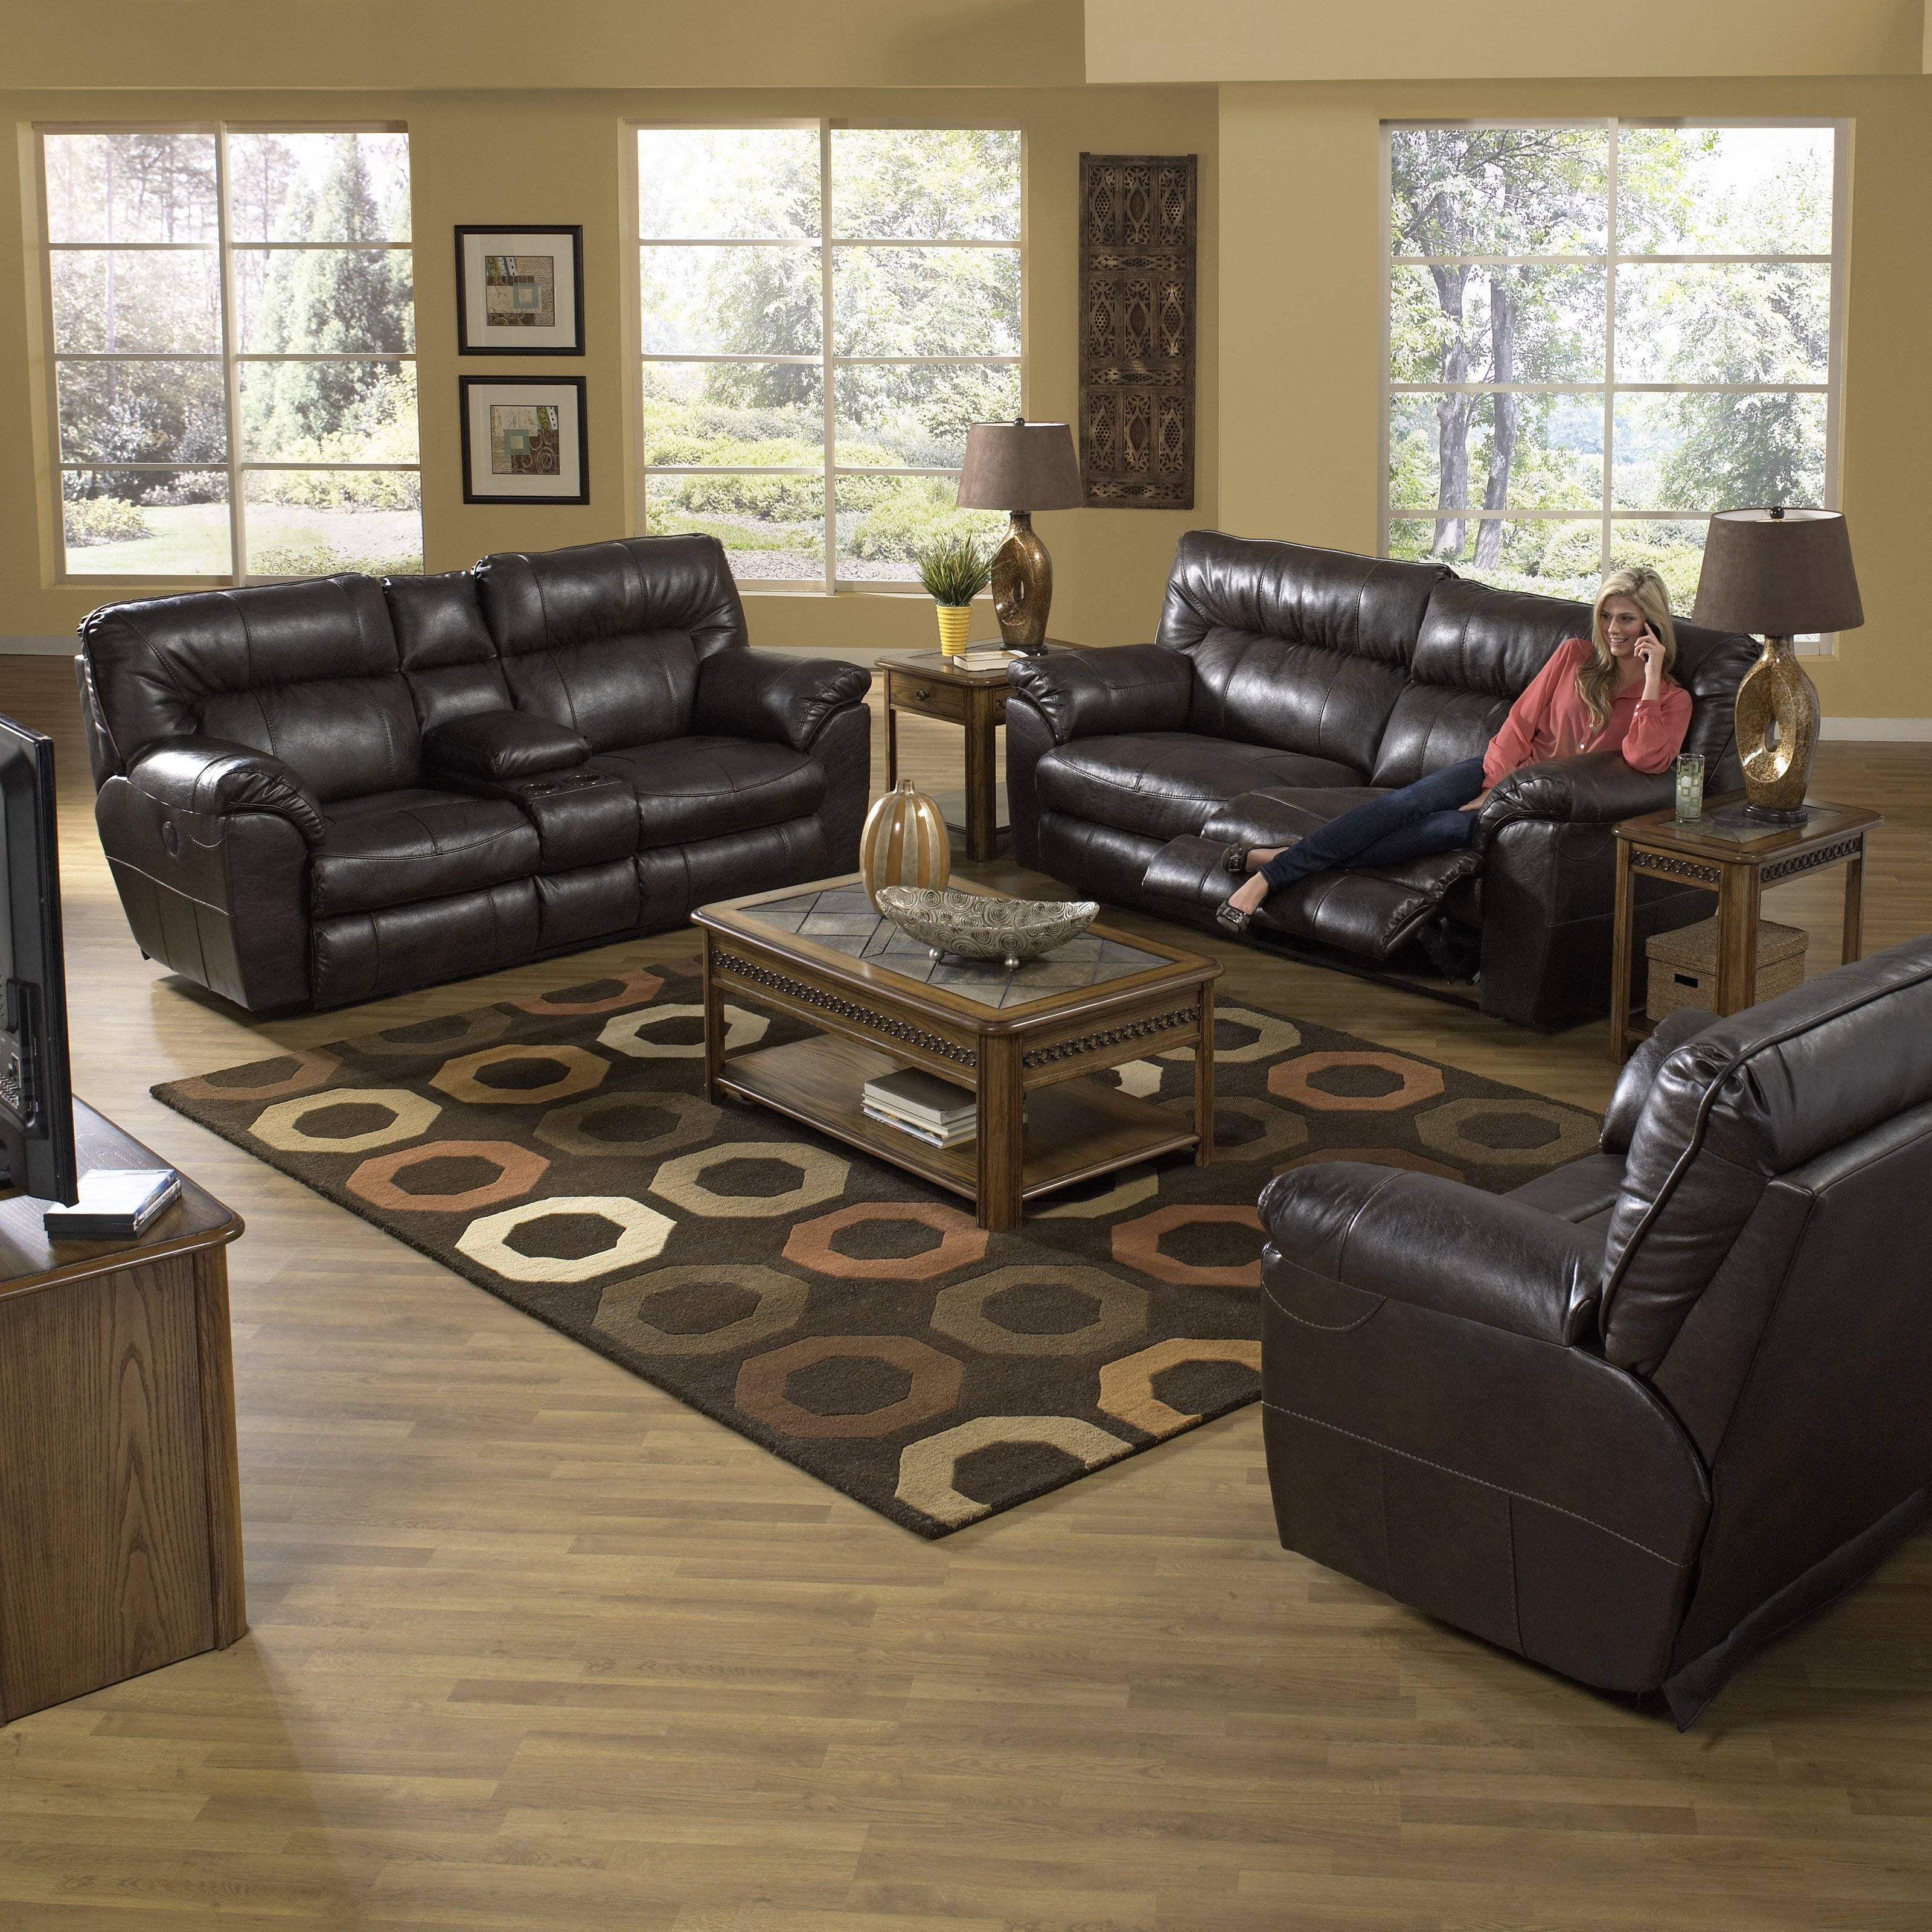 Catnapper Nolan Leather Reclining Sofa Set - Godiva - Walmart within Catnapper Reclining Sofas (Image 7 of 15)